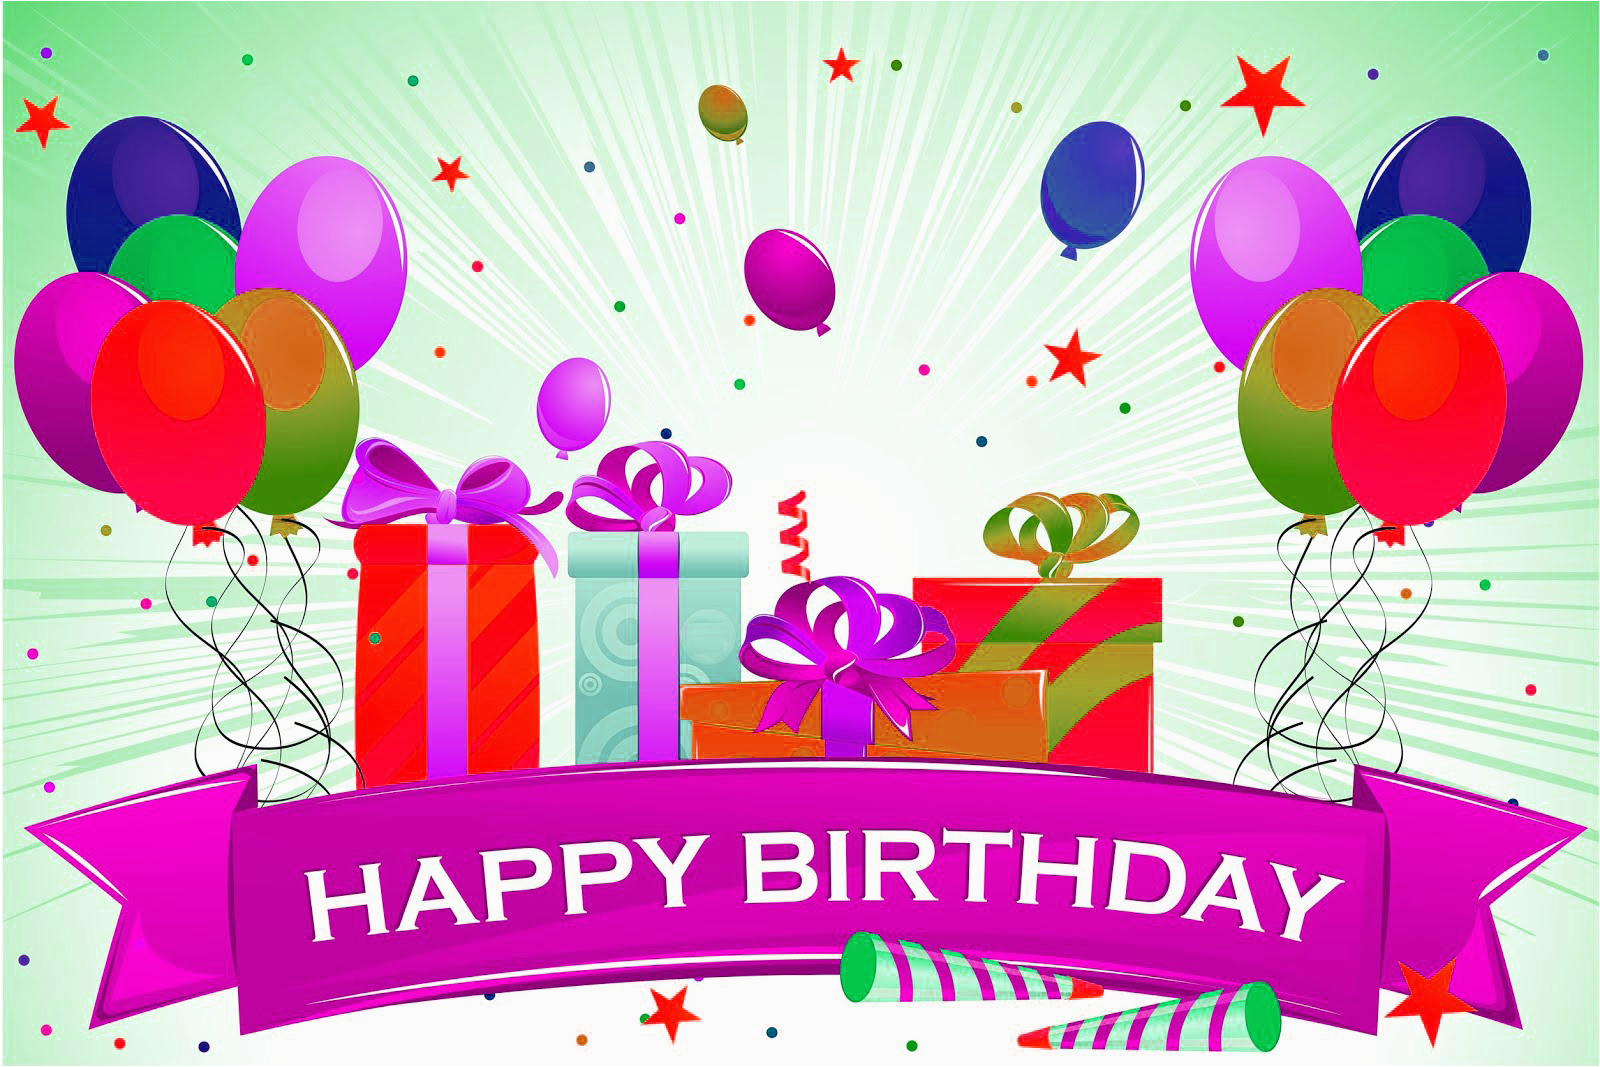 birthday cards images and best wishes for you